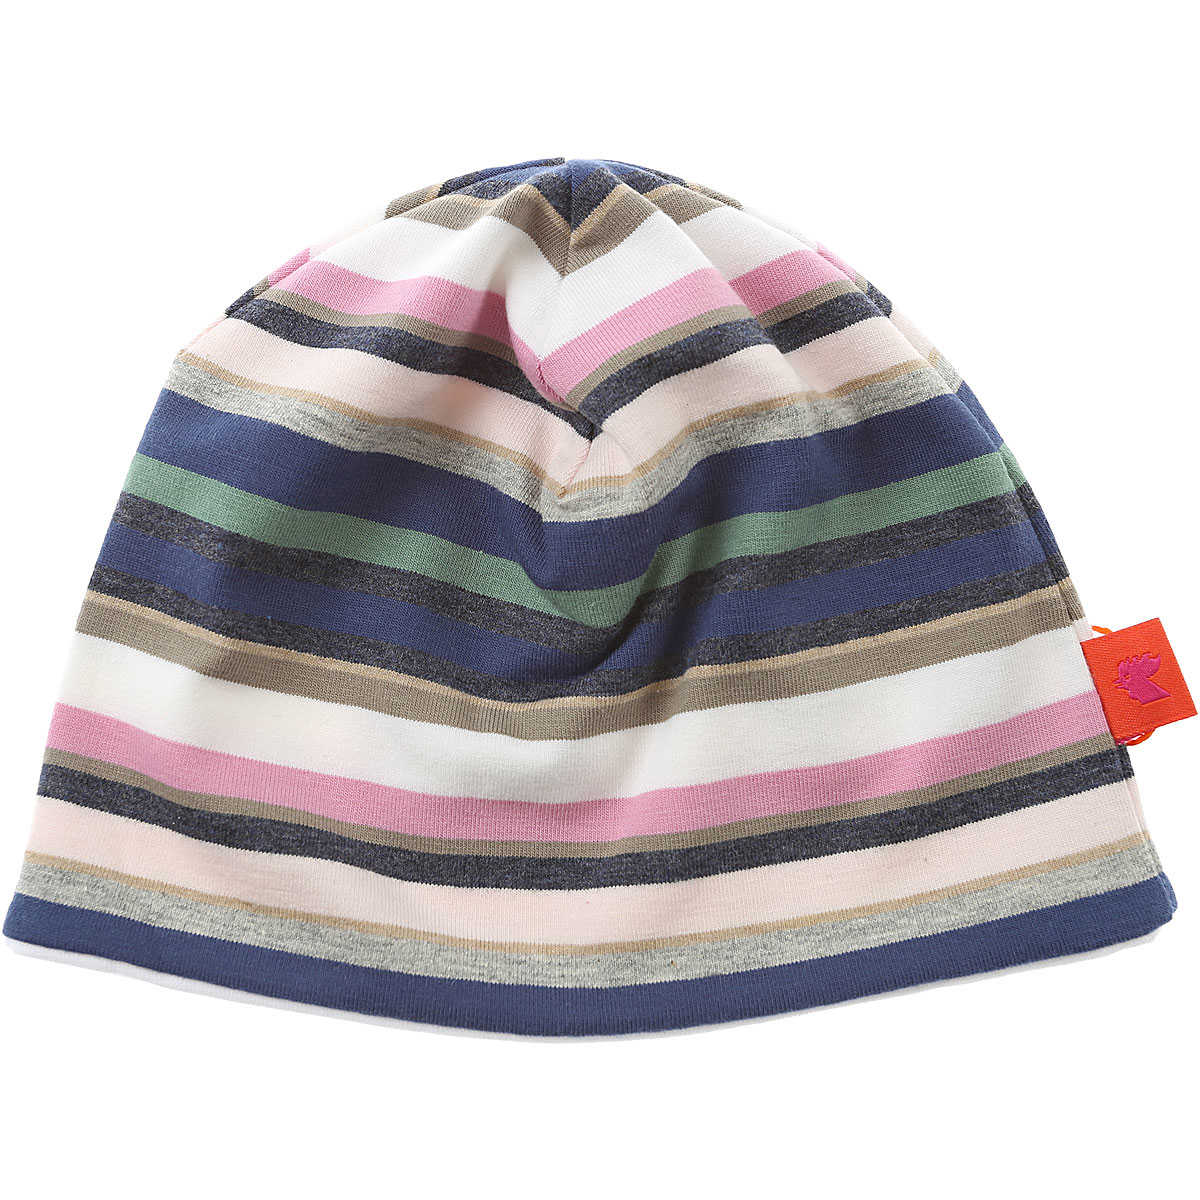 Gallo Baby Hats for Girls in Outlet Pink USA - GOOFASH